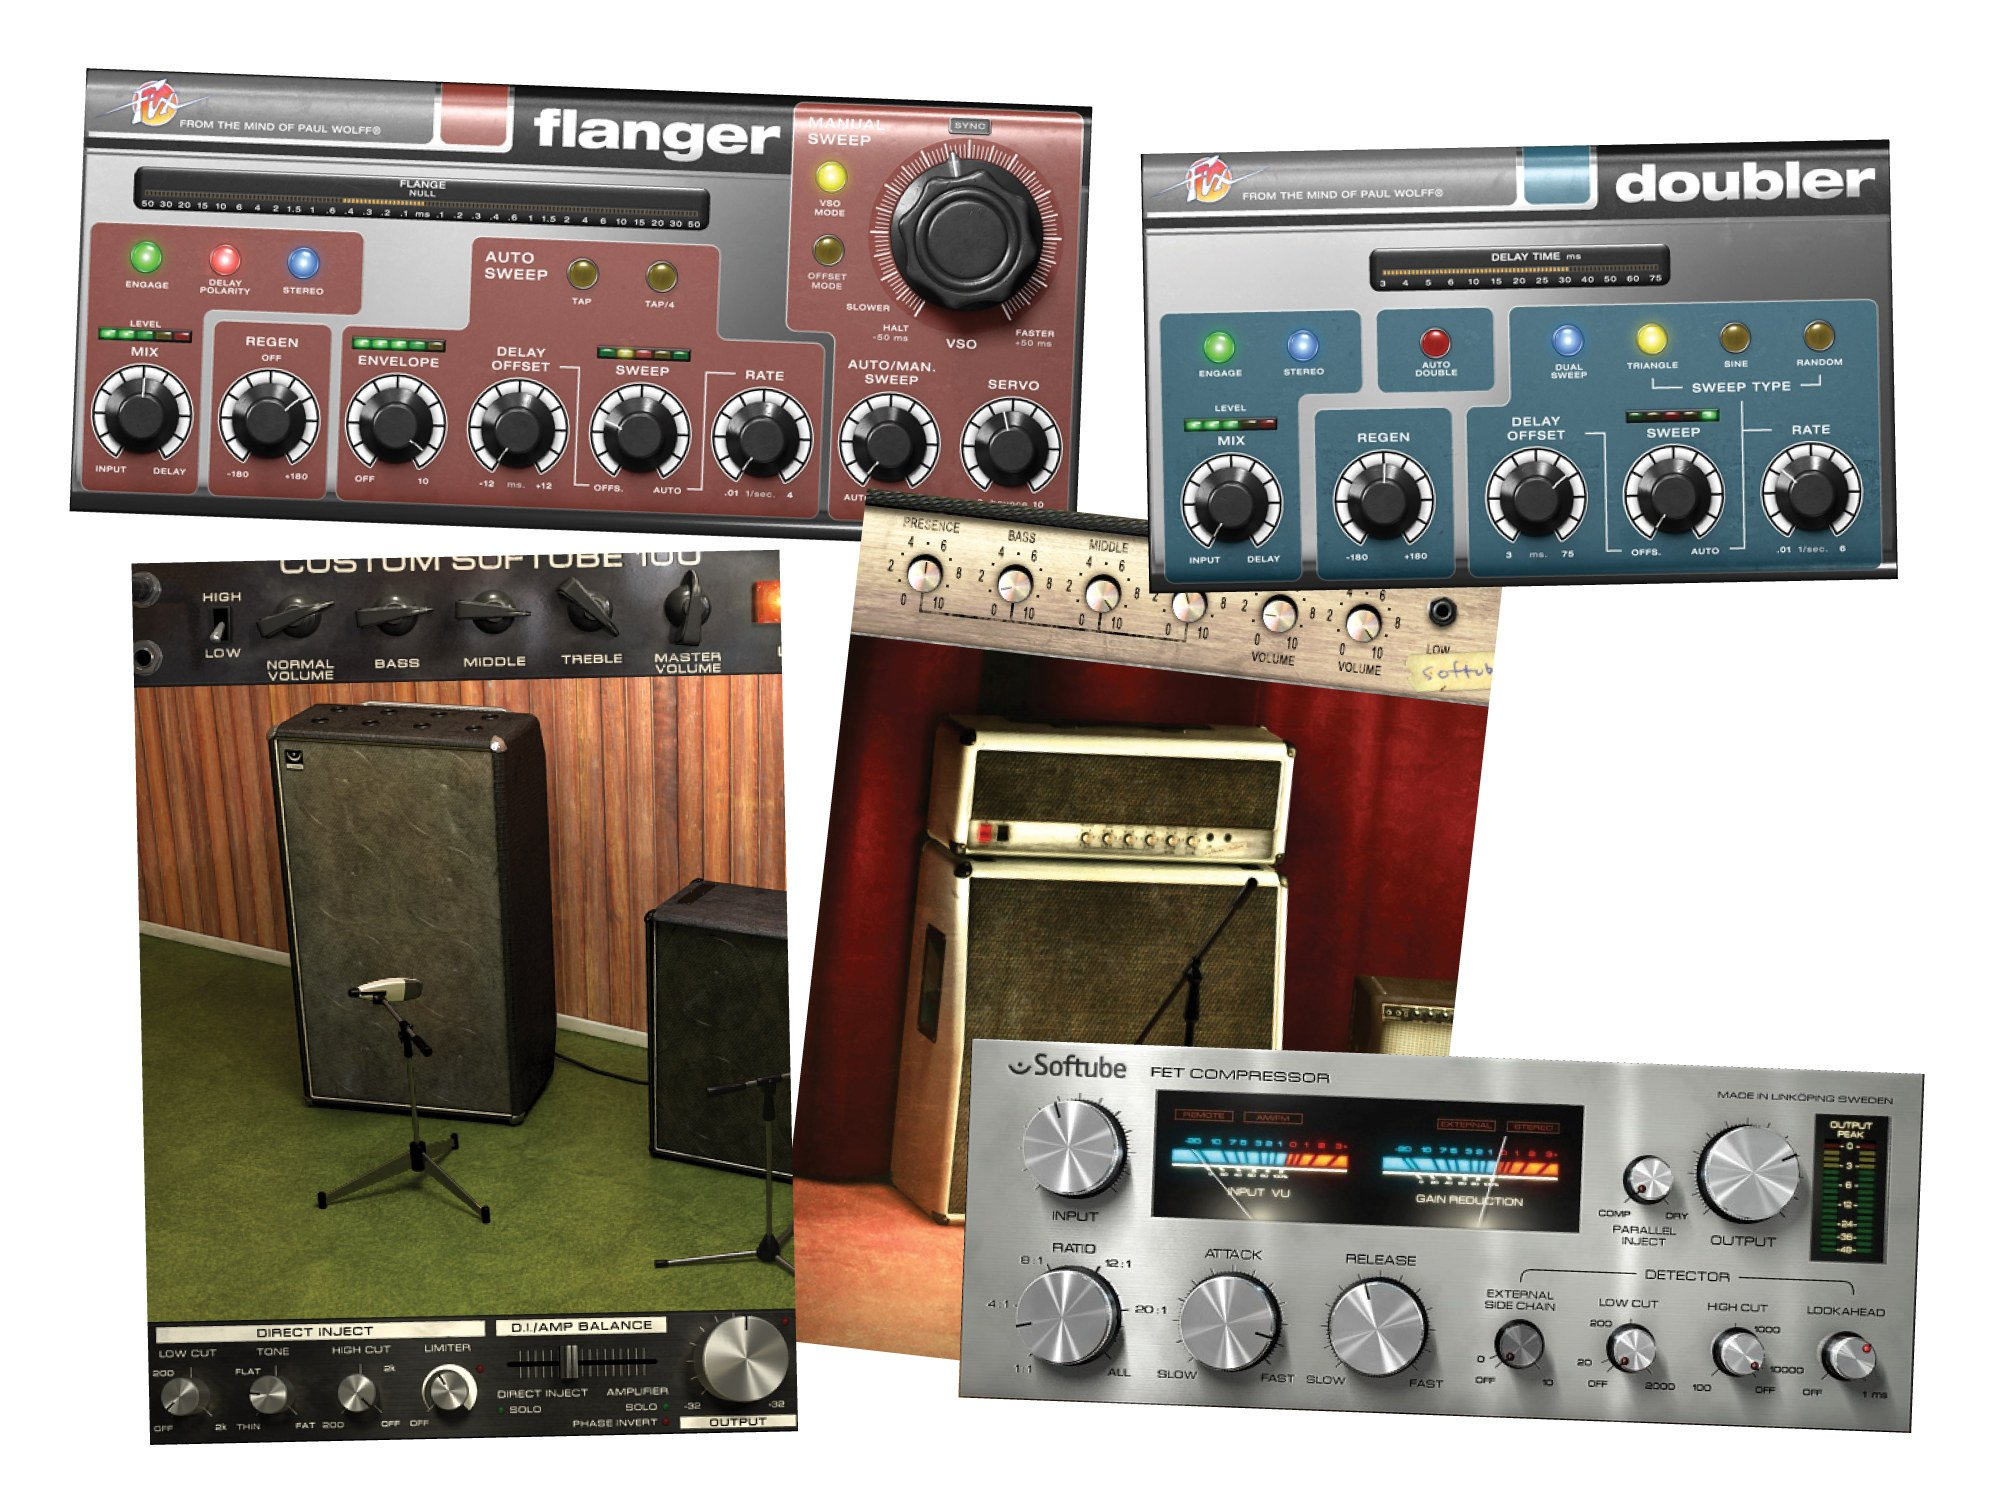 Download for Eligible Focusrite Bundle Owners